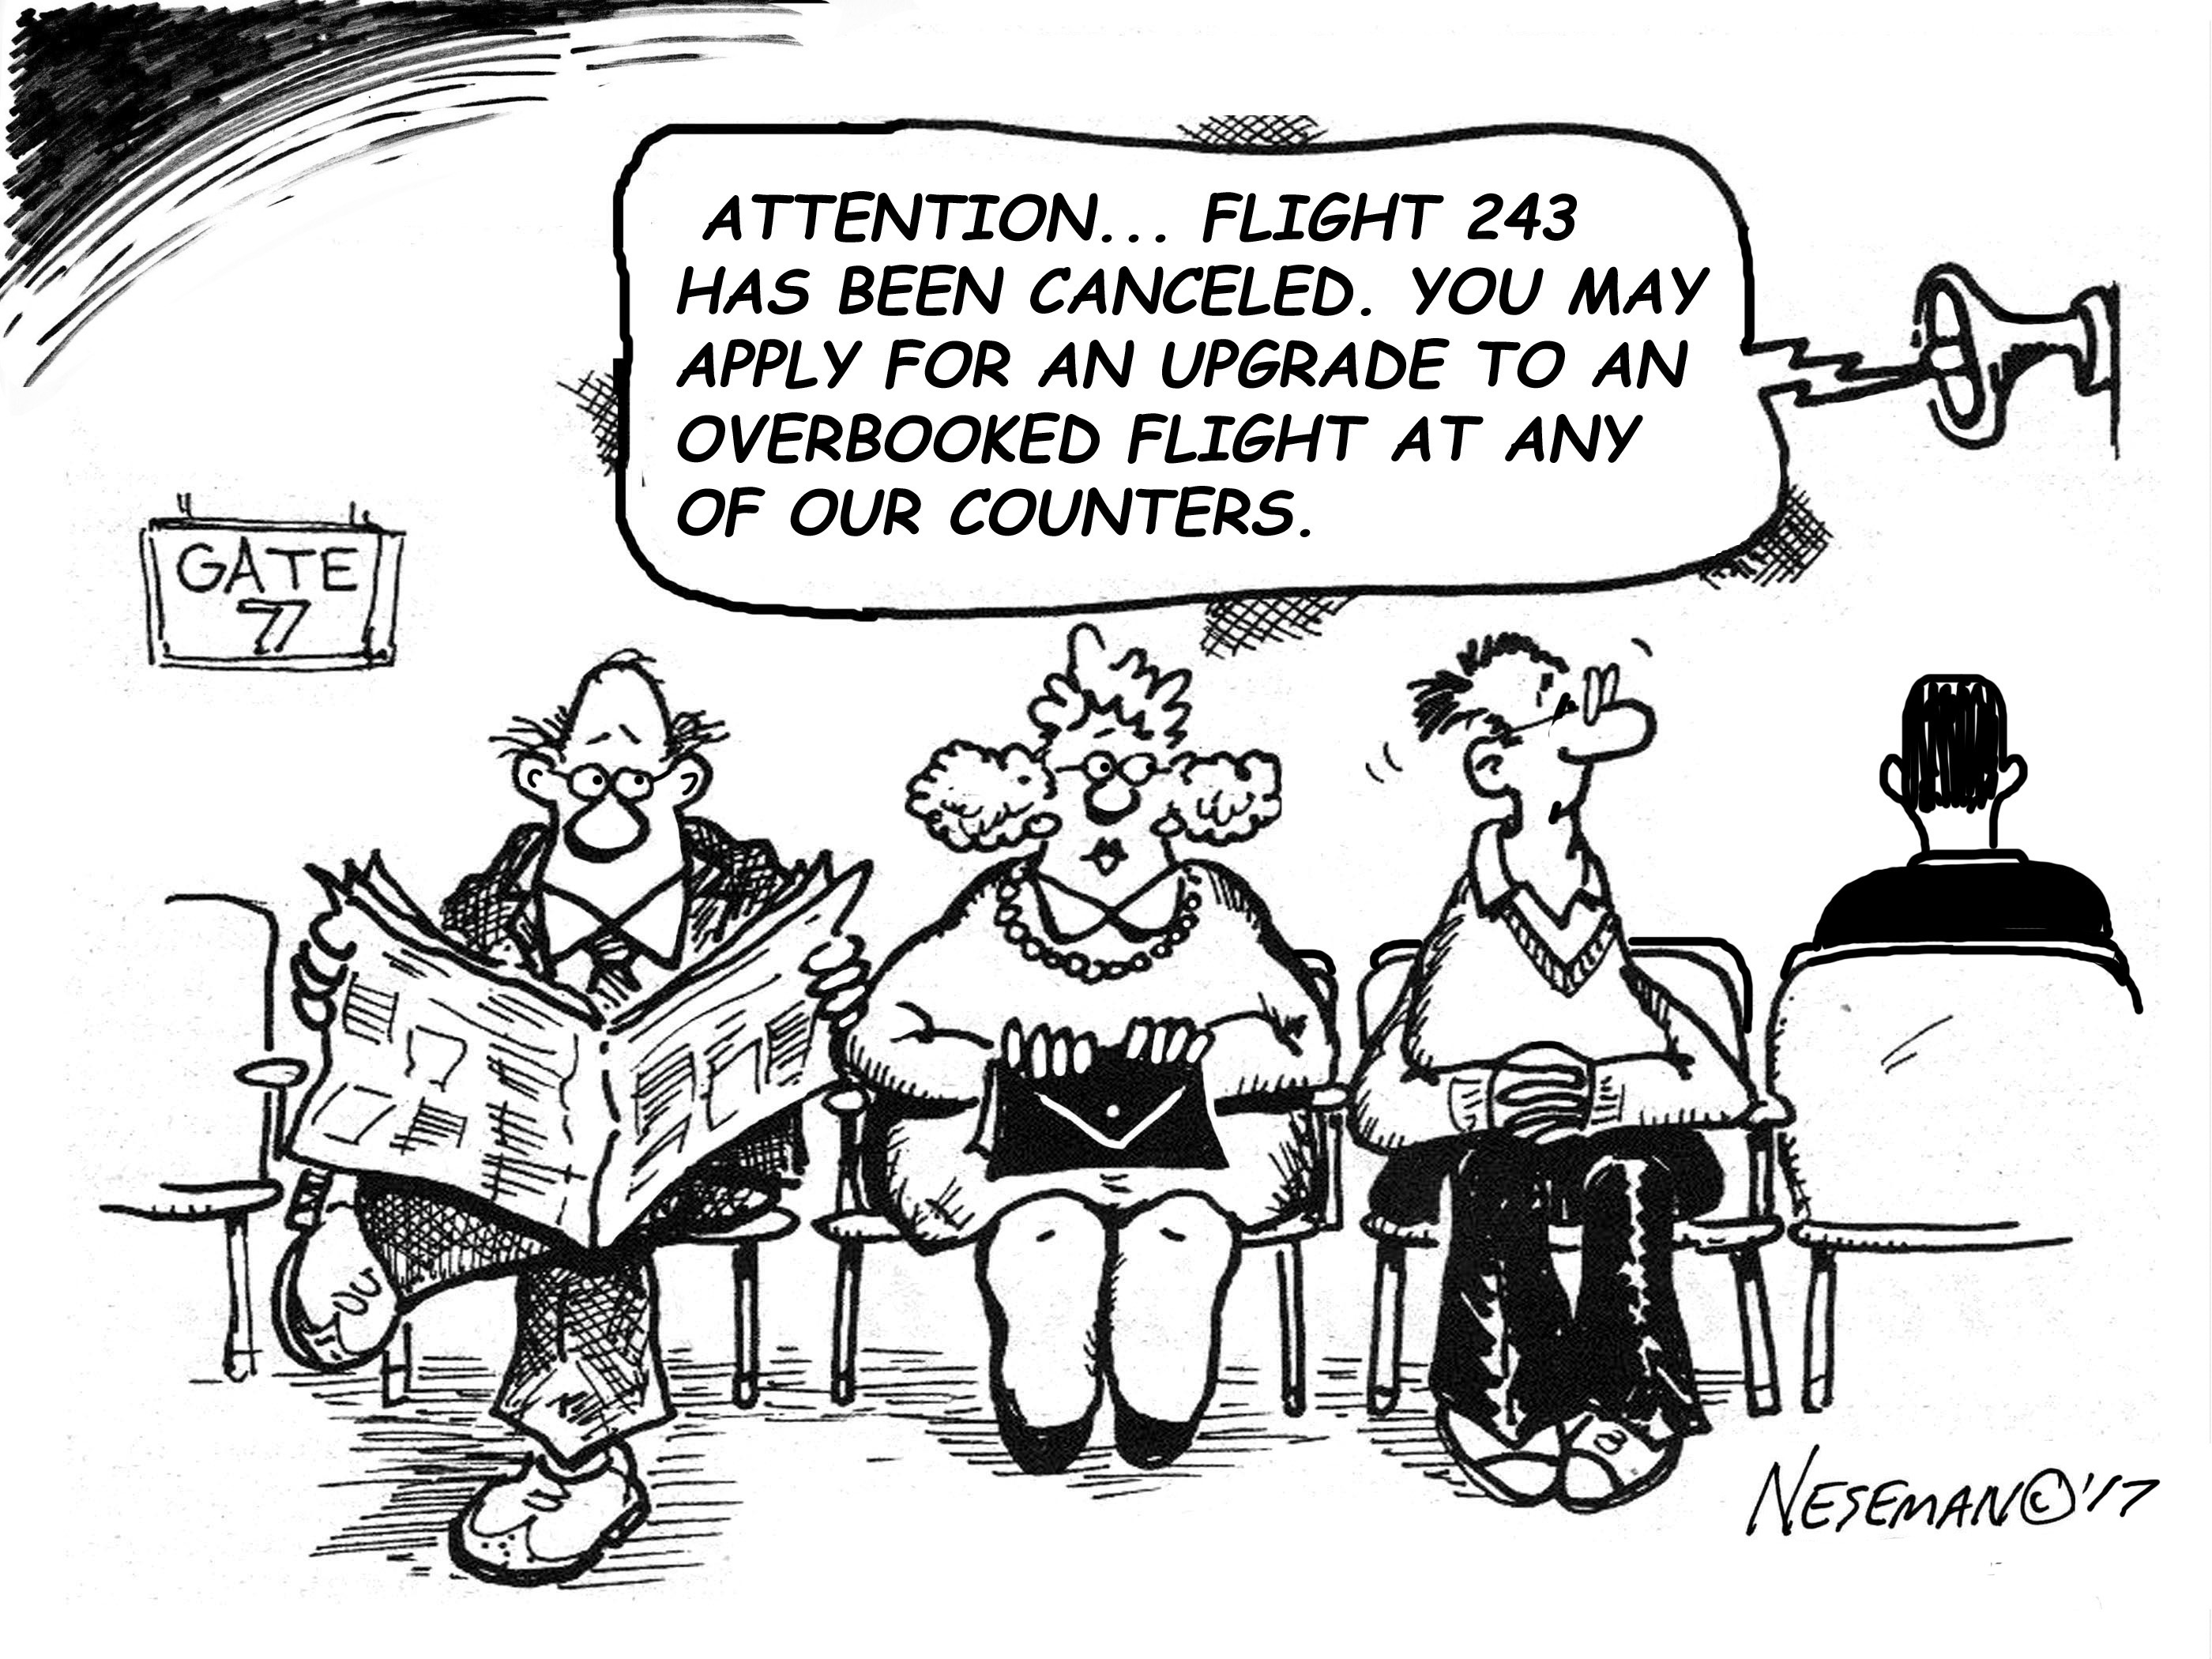 Cartoon-flight cancelled